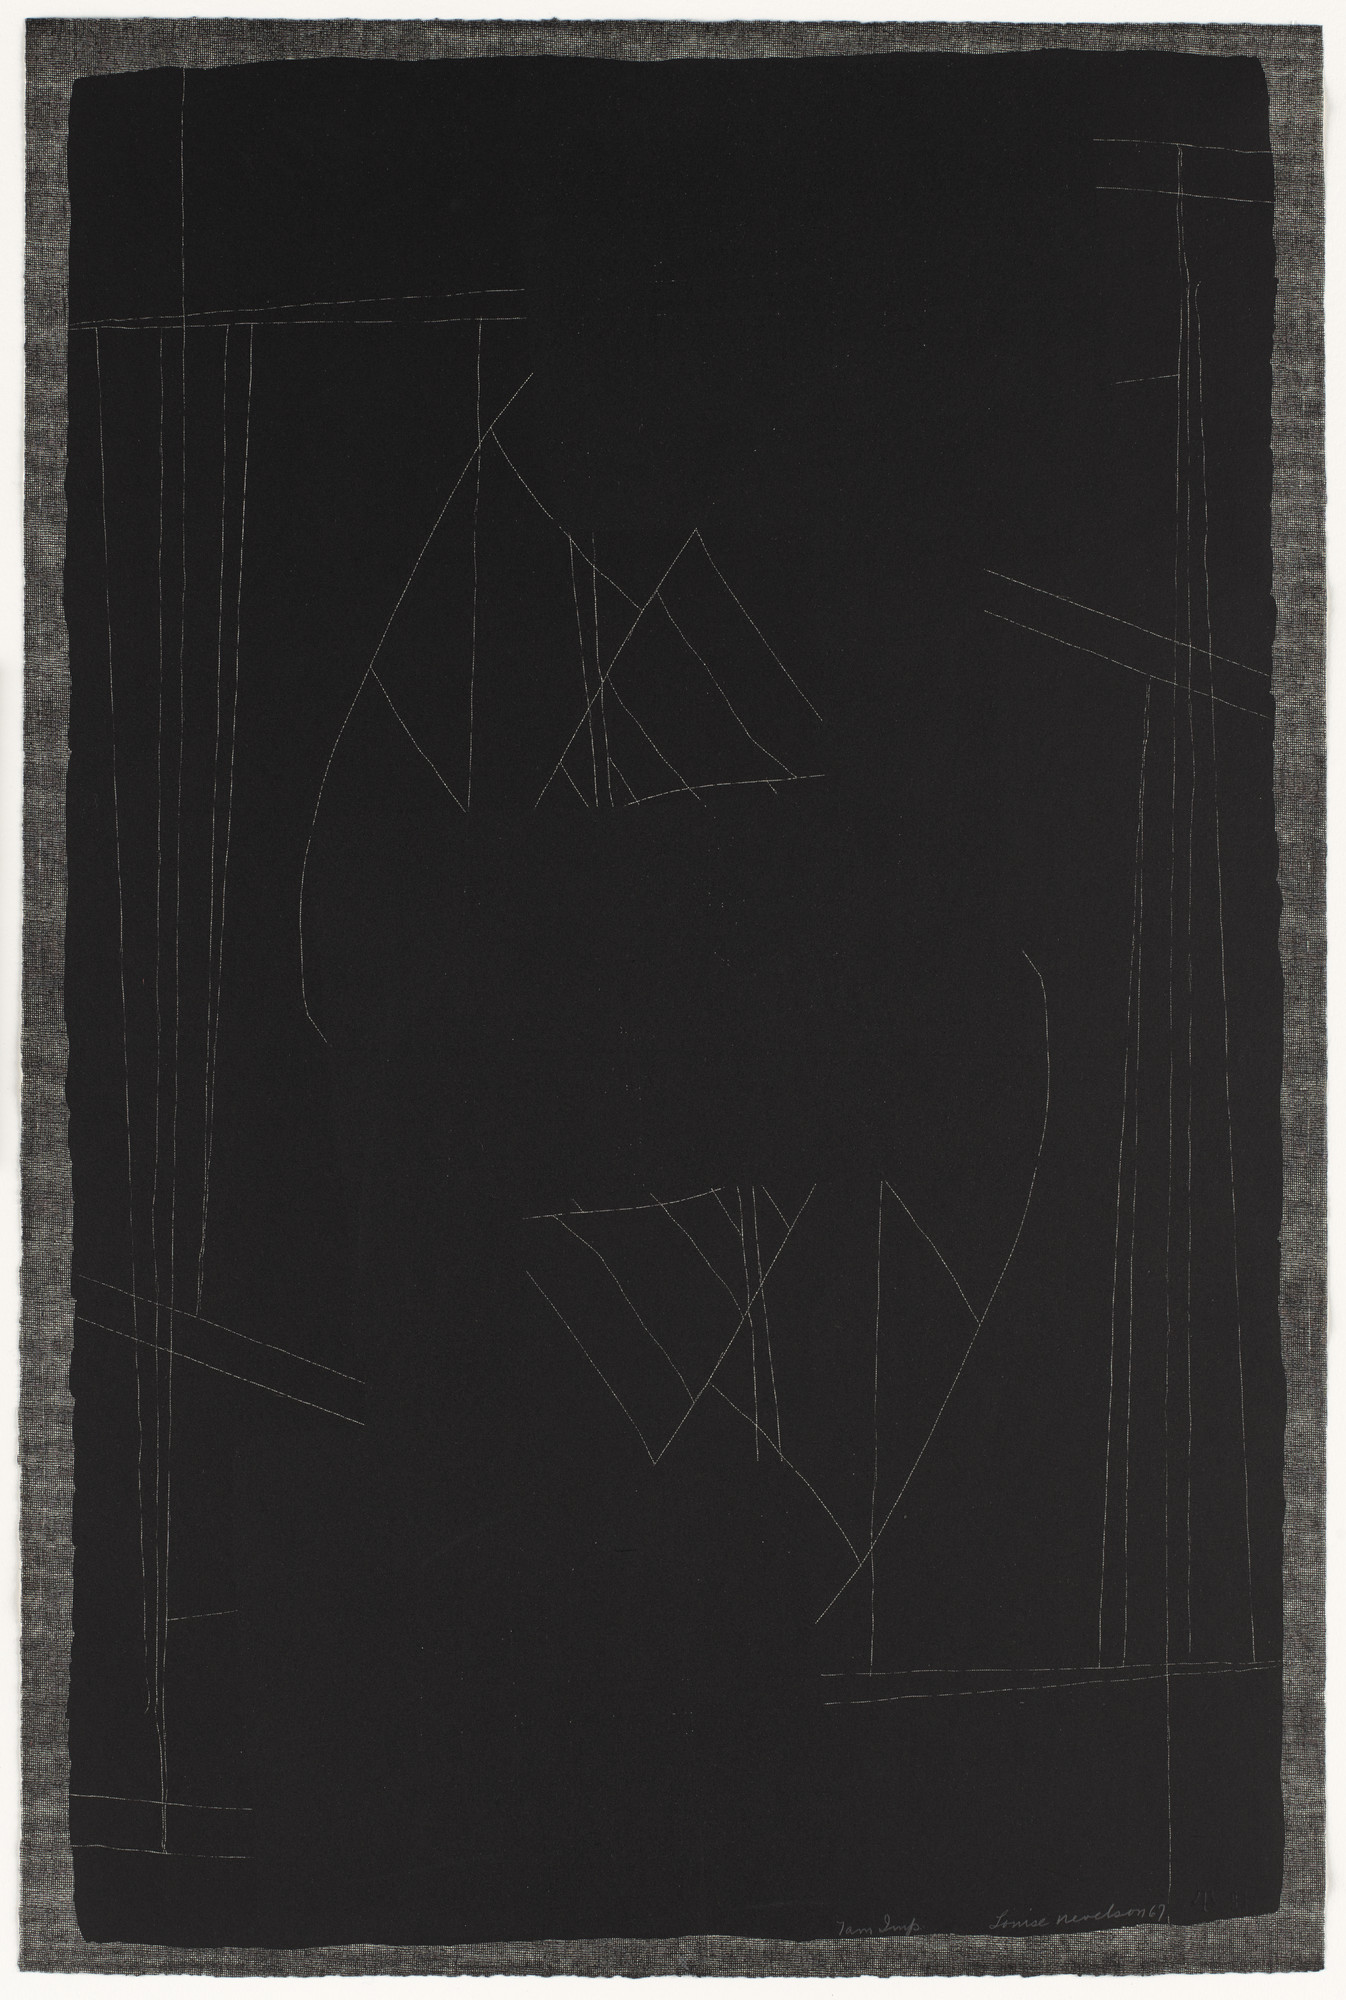 Louise Nevelson. Untitled. 1967